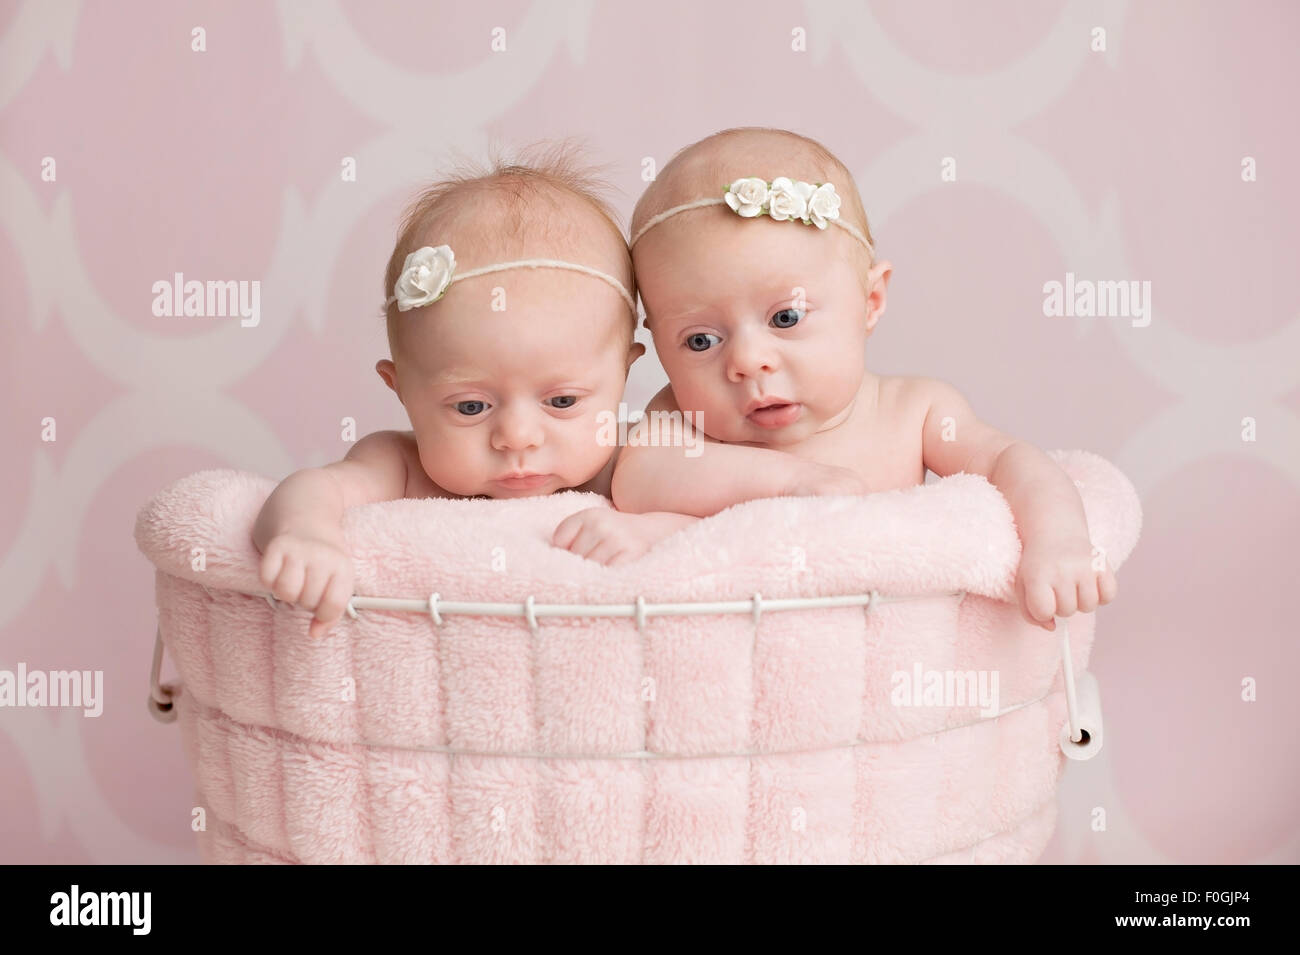 Two Twin Baby Girls Sit Stock Photos & Two Twin Baby Girls Sit Stock ...